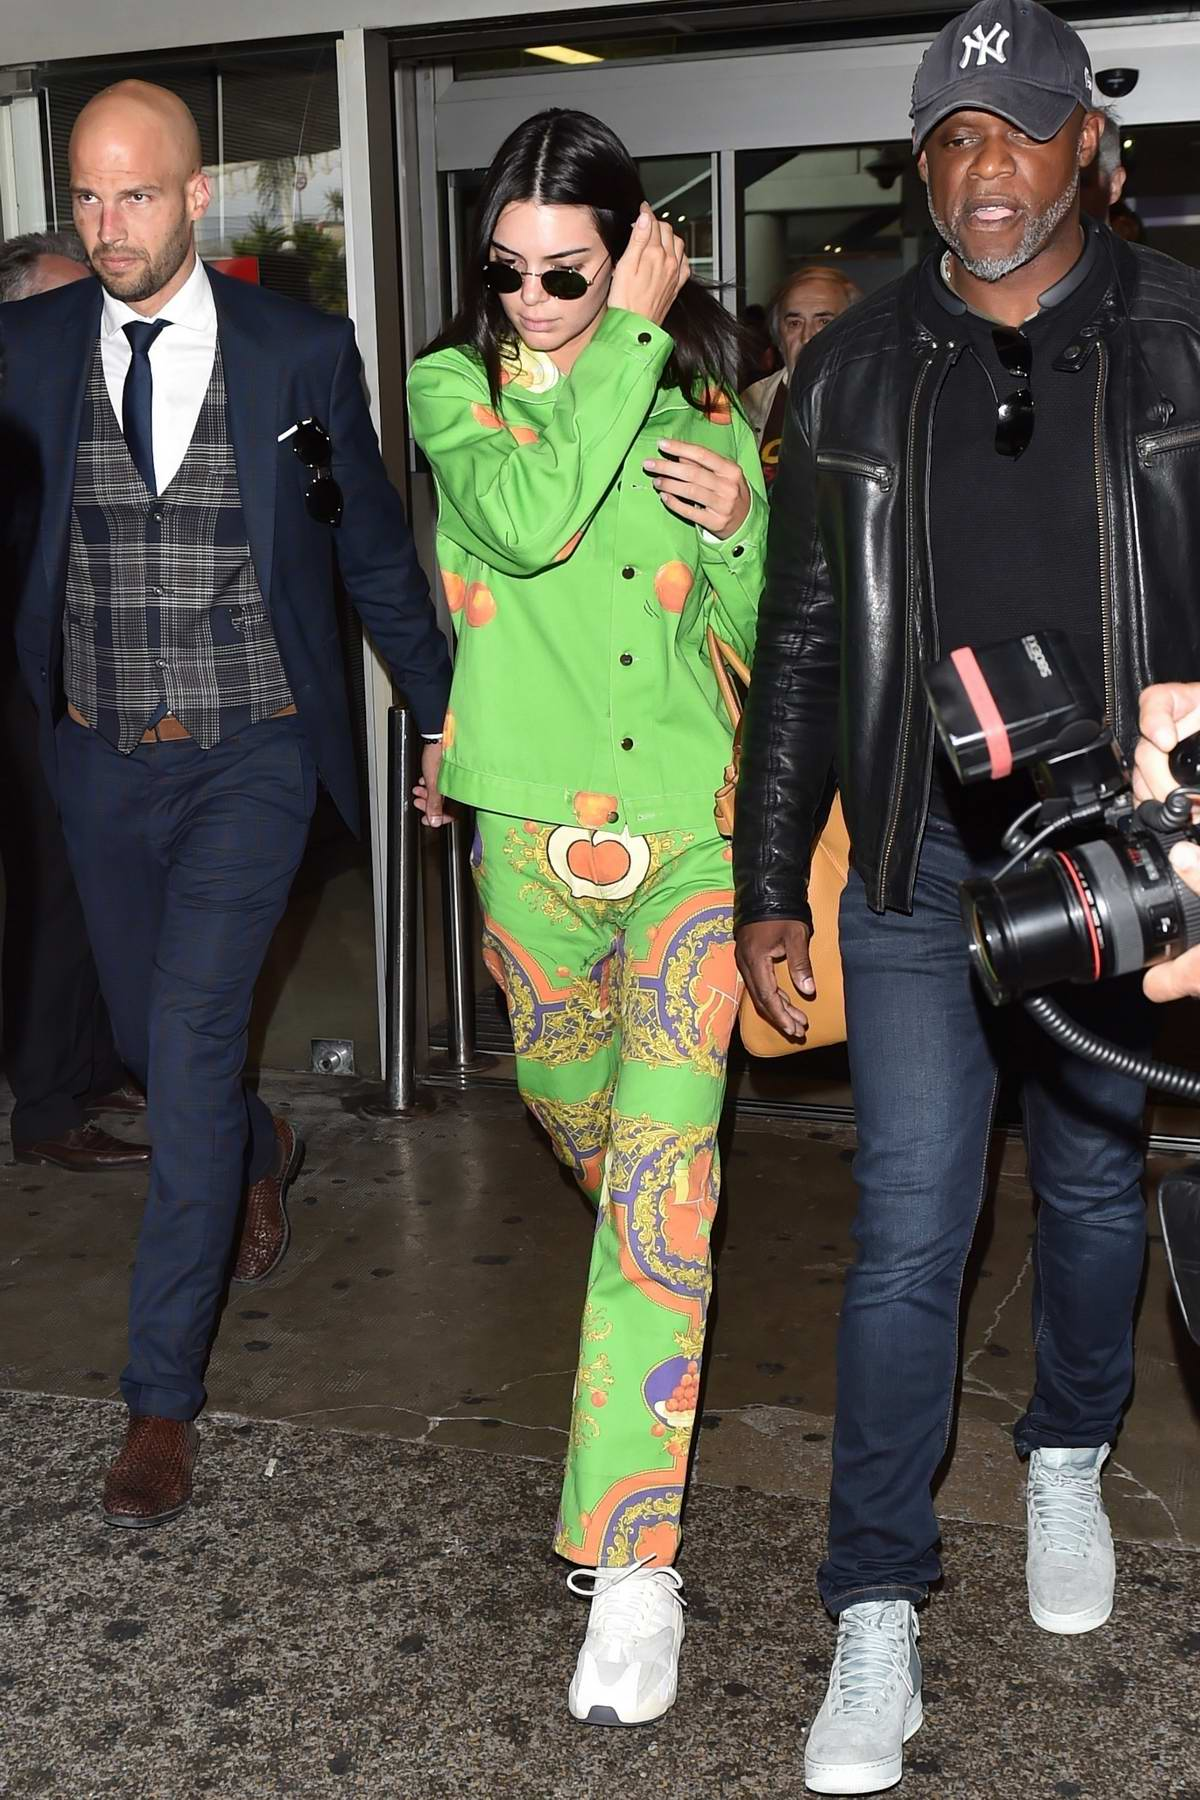 Kendall Jenner dons a bright green outfit as she touches down at Nice Airport for the 72nd annual Cannes Film Festival, France